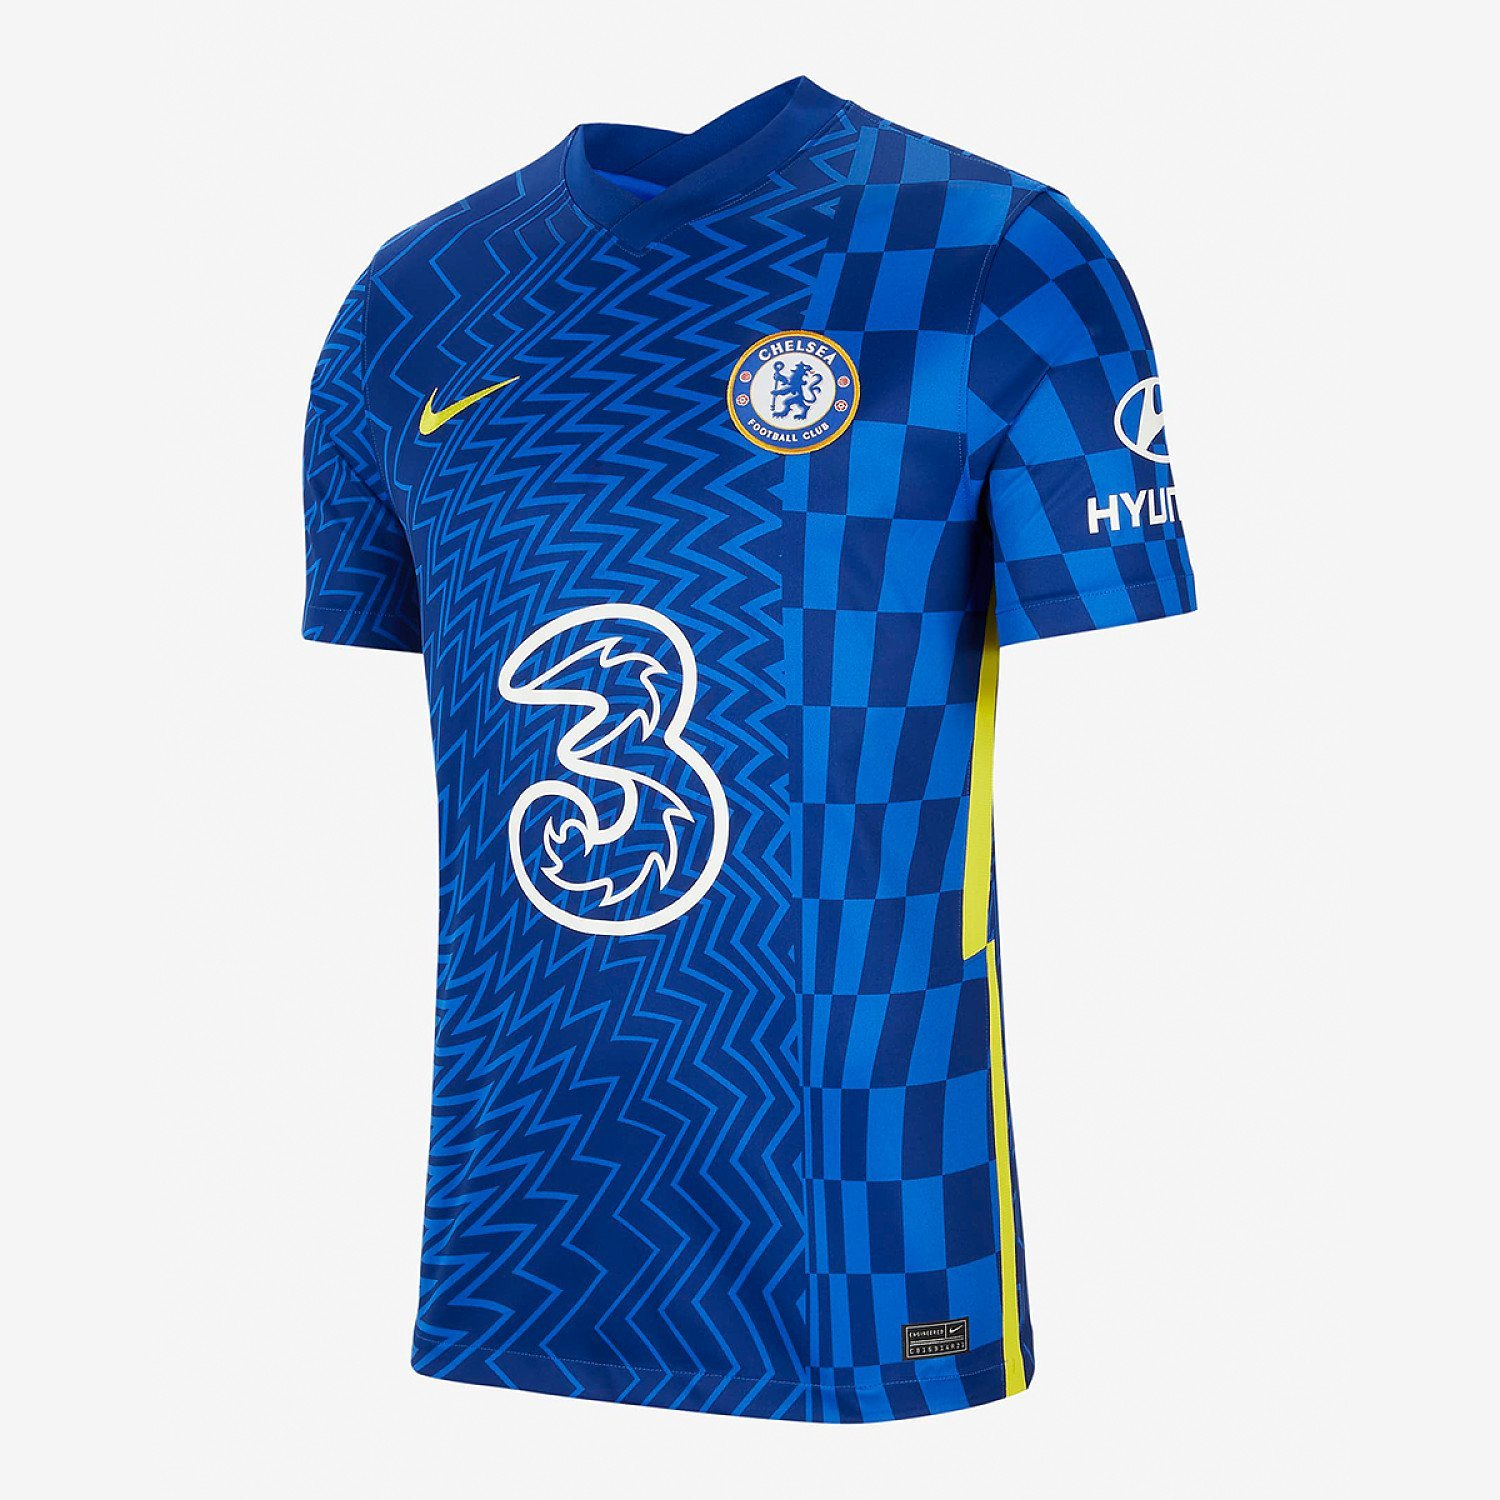 WIN the Chelsea FC Home Shirt 2021-22